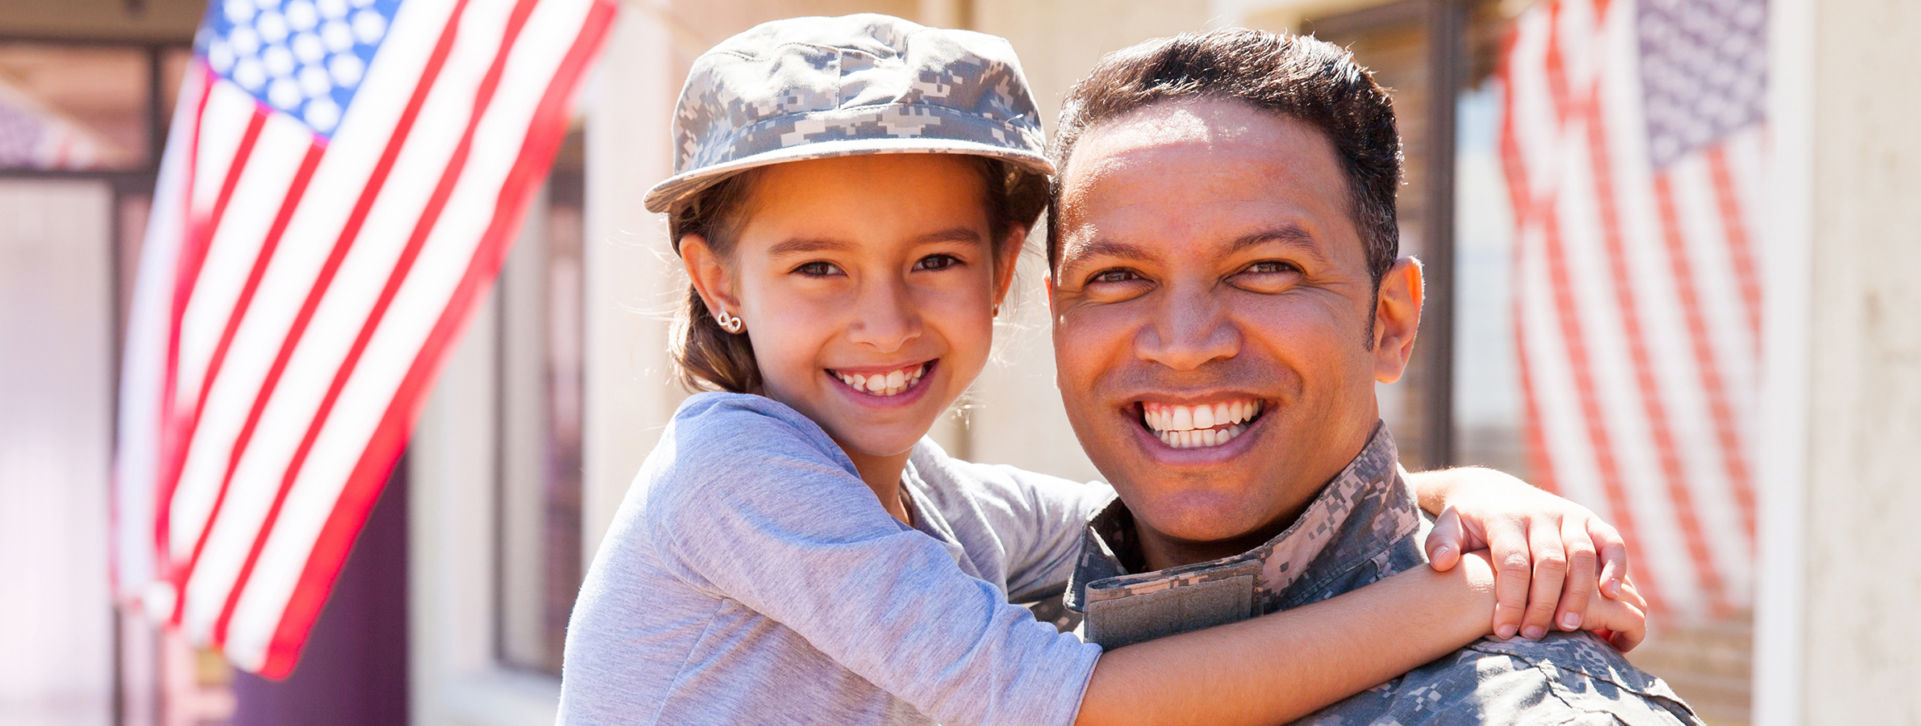 Military Father With Daughter